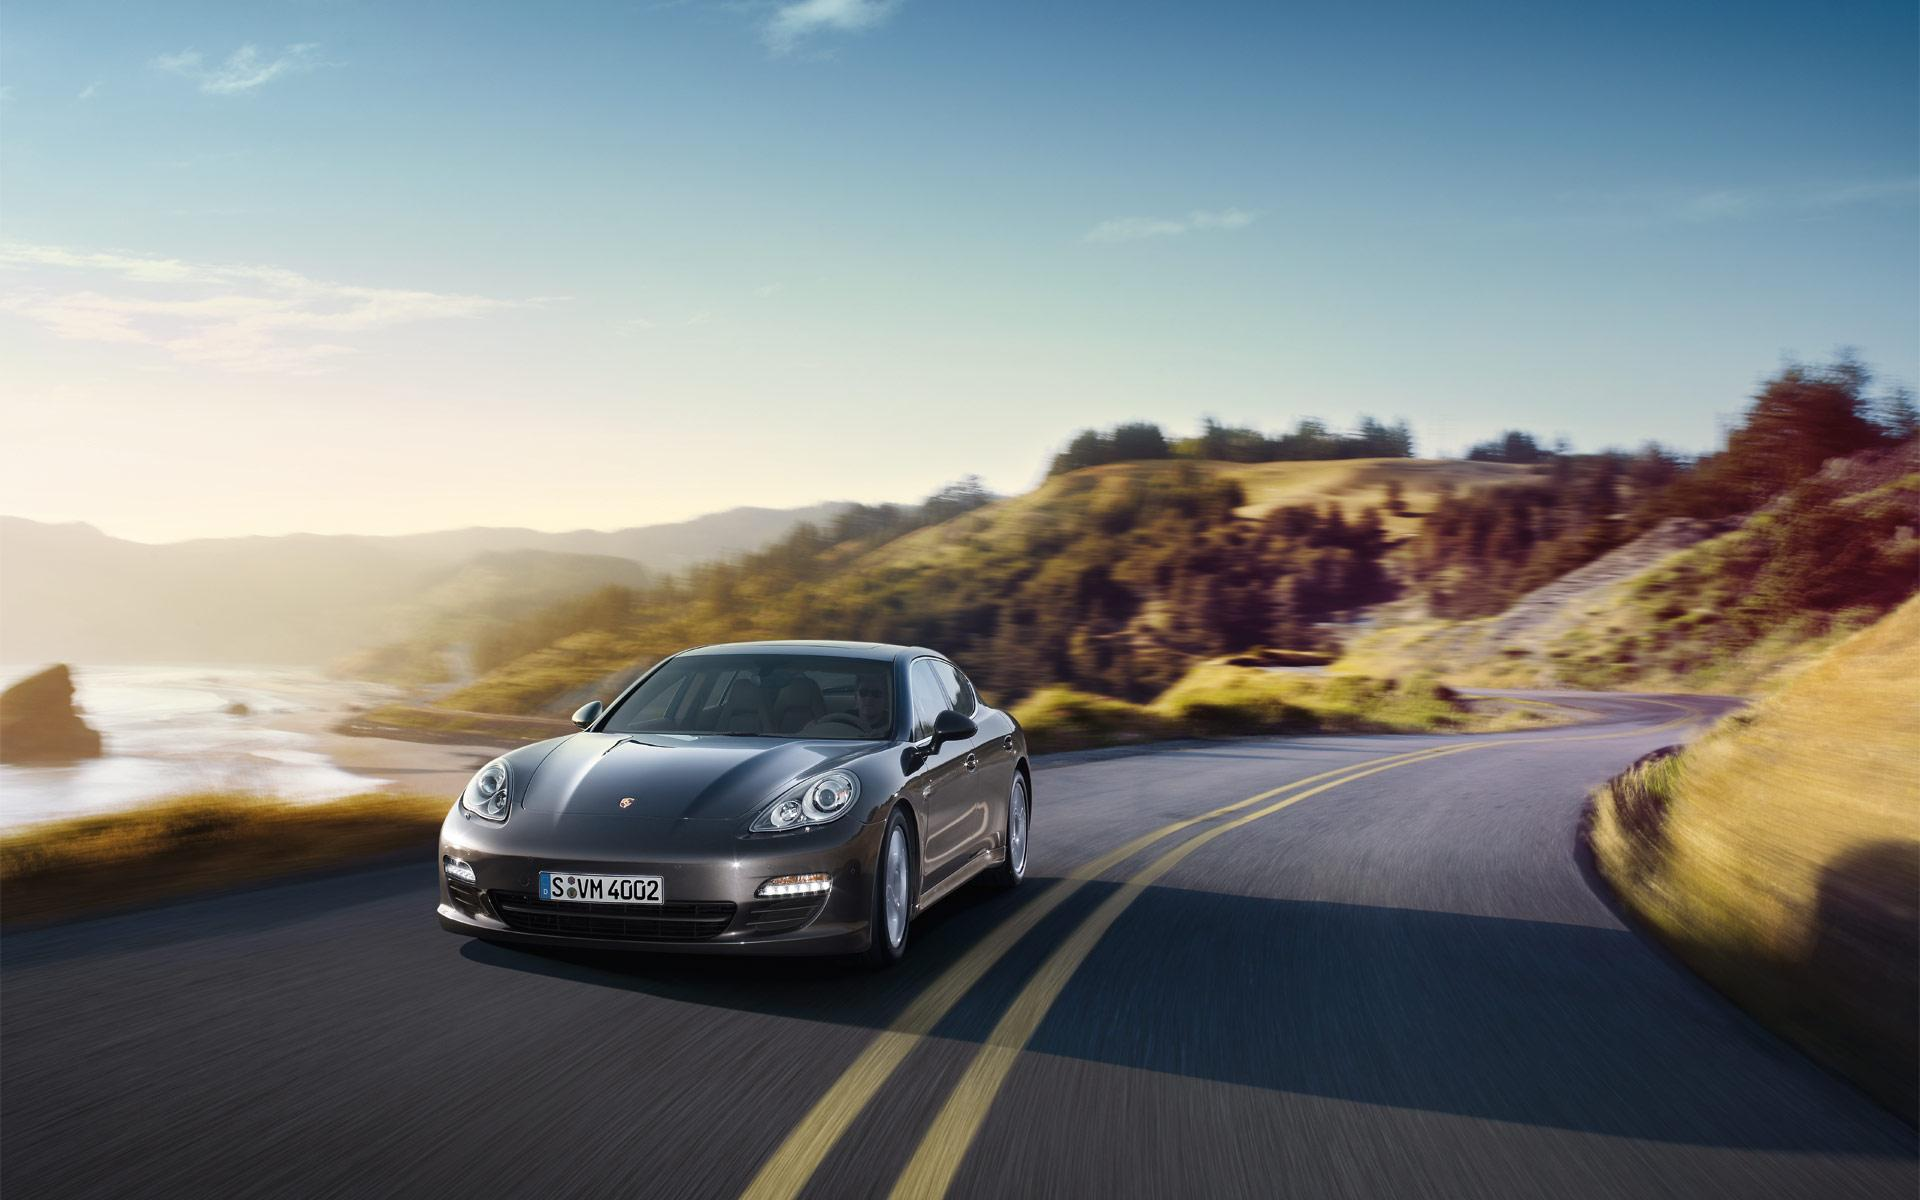 Porsche Panamera Wallpaper Hd wallpaper   336422 1920x1200